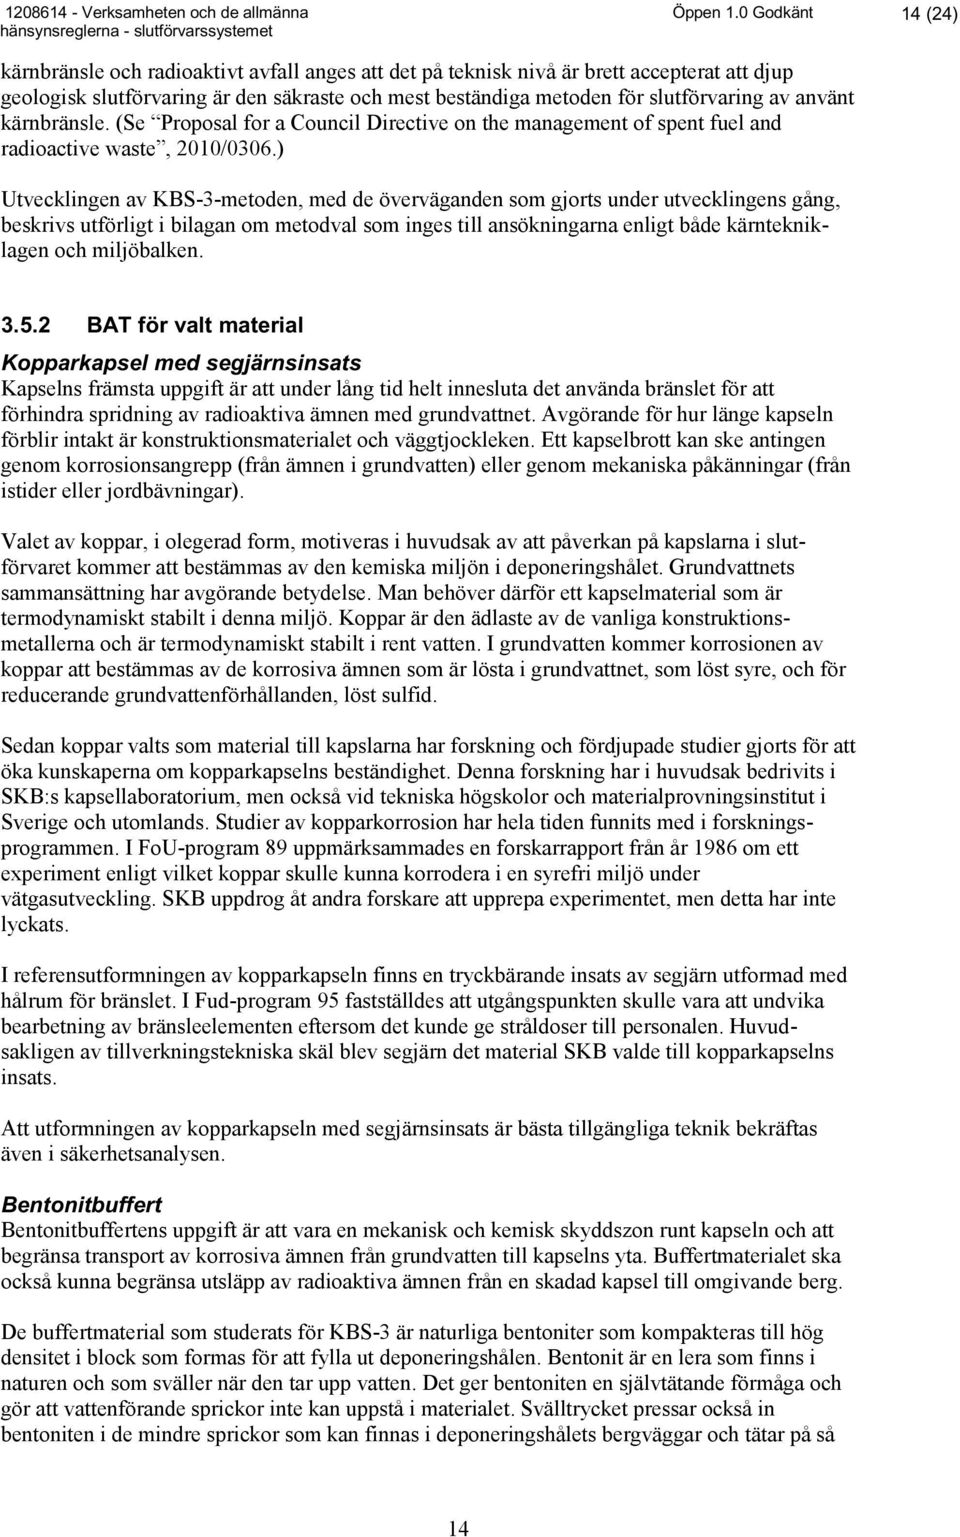 av använt kärnbränsle. (Se Proposal for a Council Directive on the management of spent fuel and radioactive waste, 2010/0306.